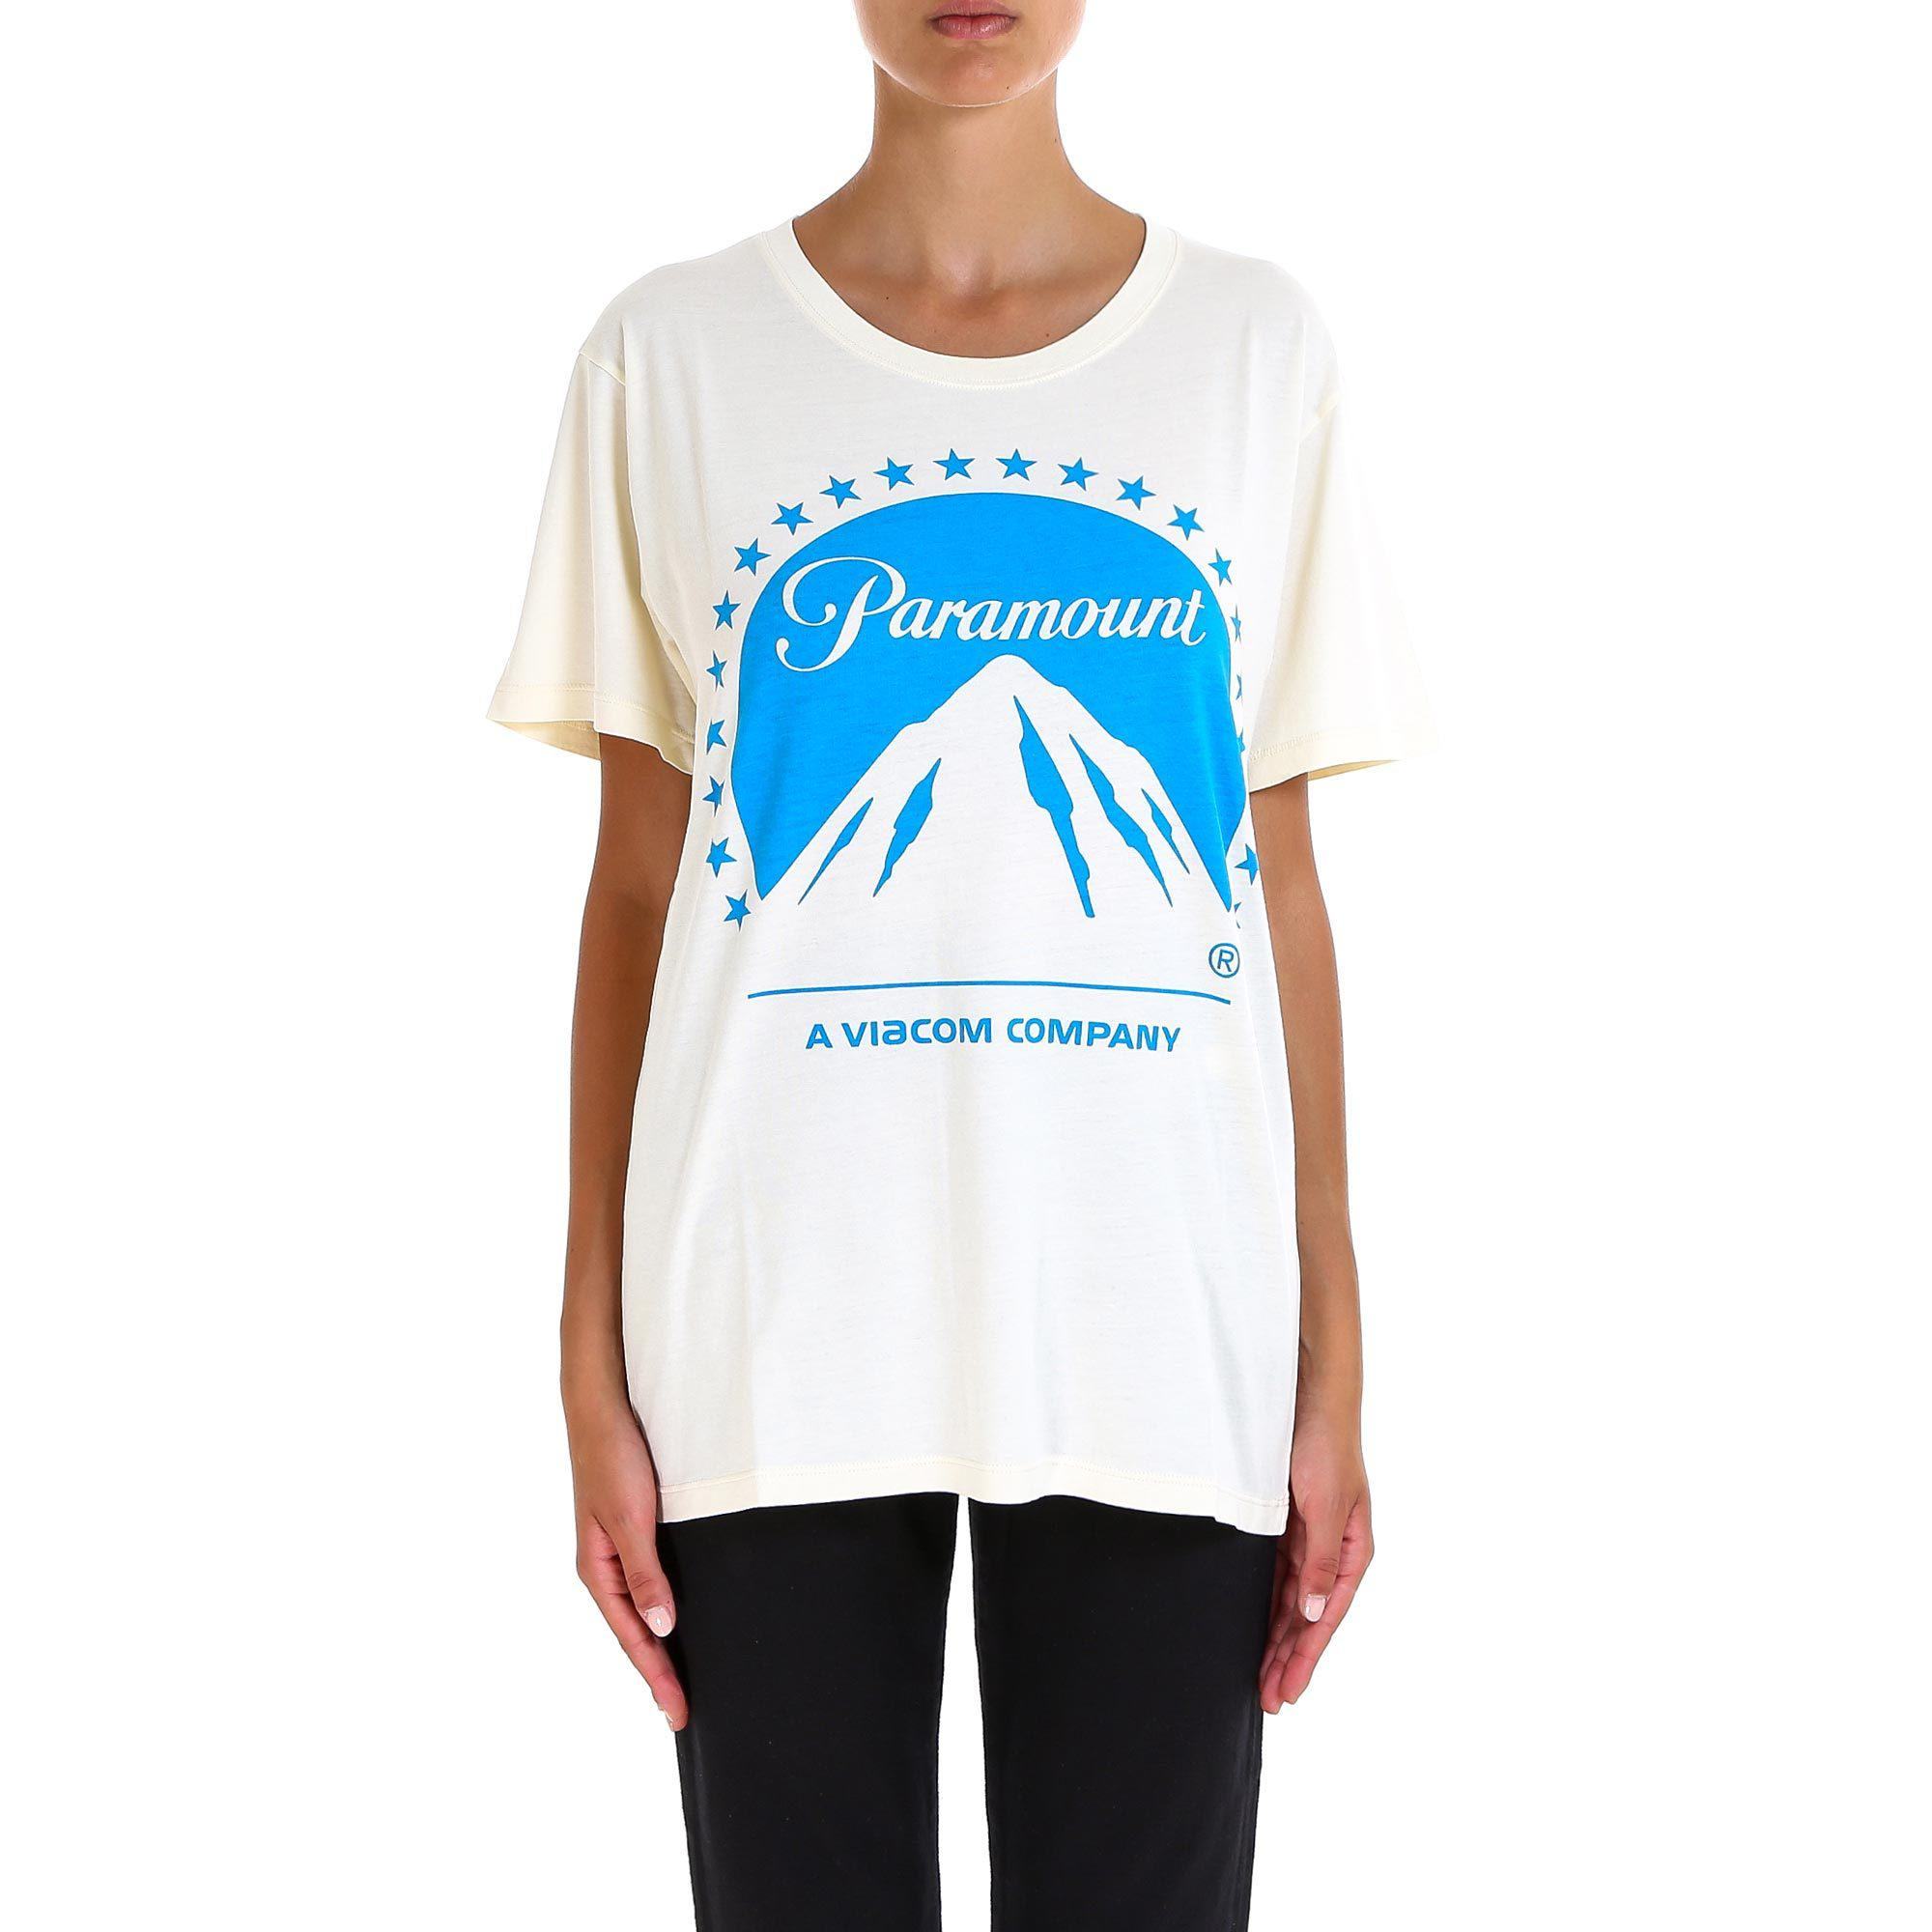 2204fe9af Gucci Paramount Print T-shirt in White - Lyst